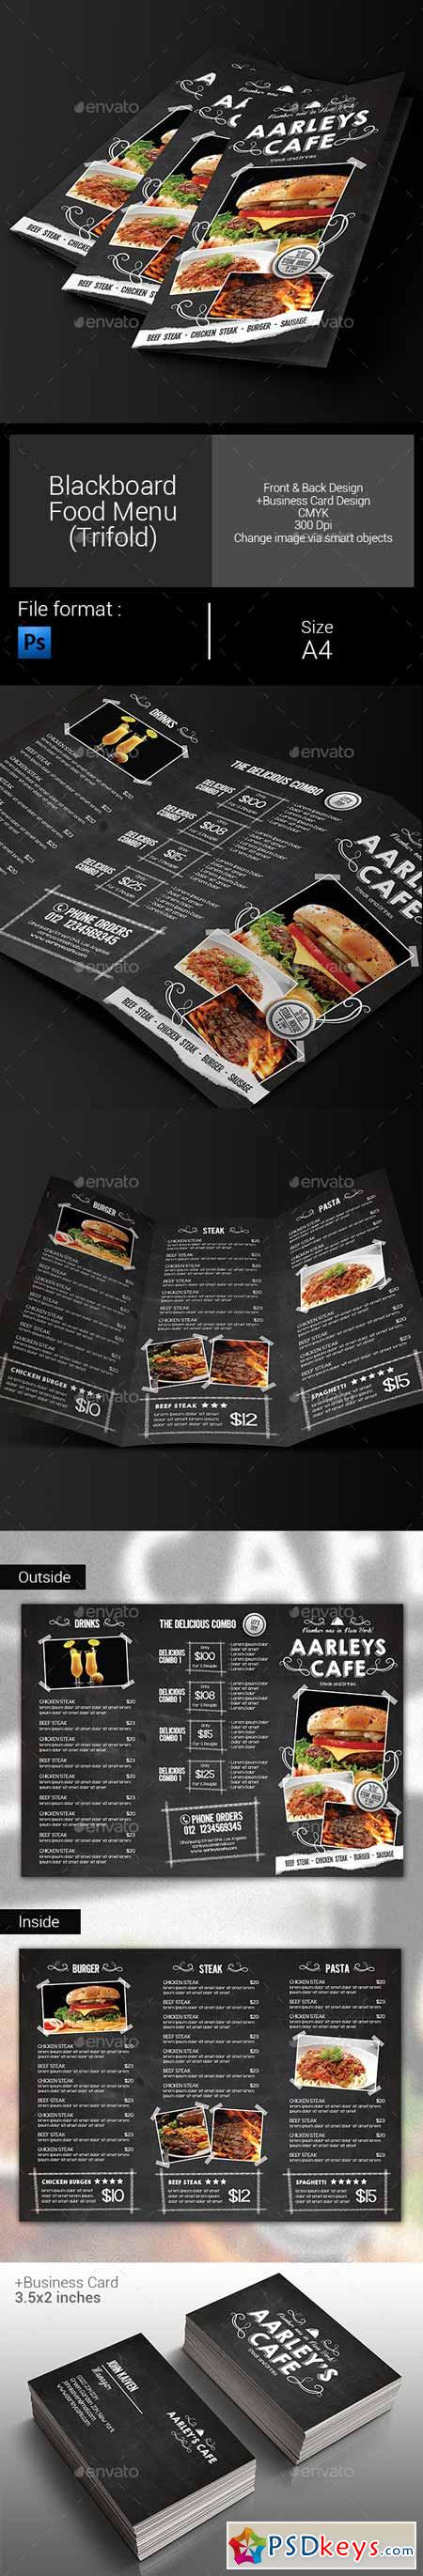 Blackboard food menu trifold business card 9897895 free blackboard food menu trifold business card 9897895 magicingreecefo Image collections